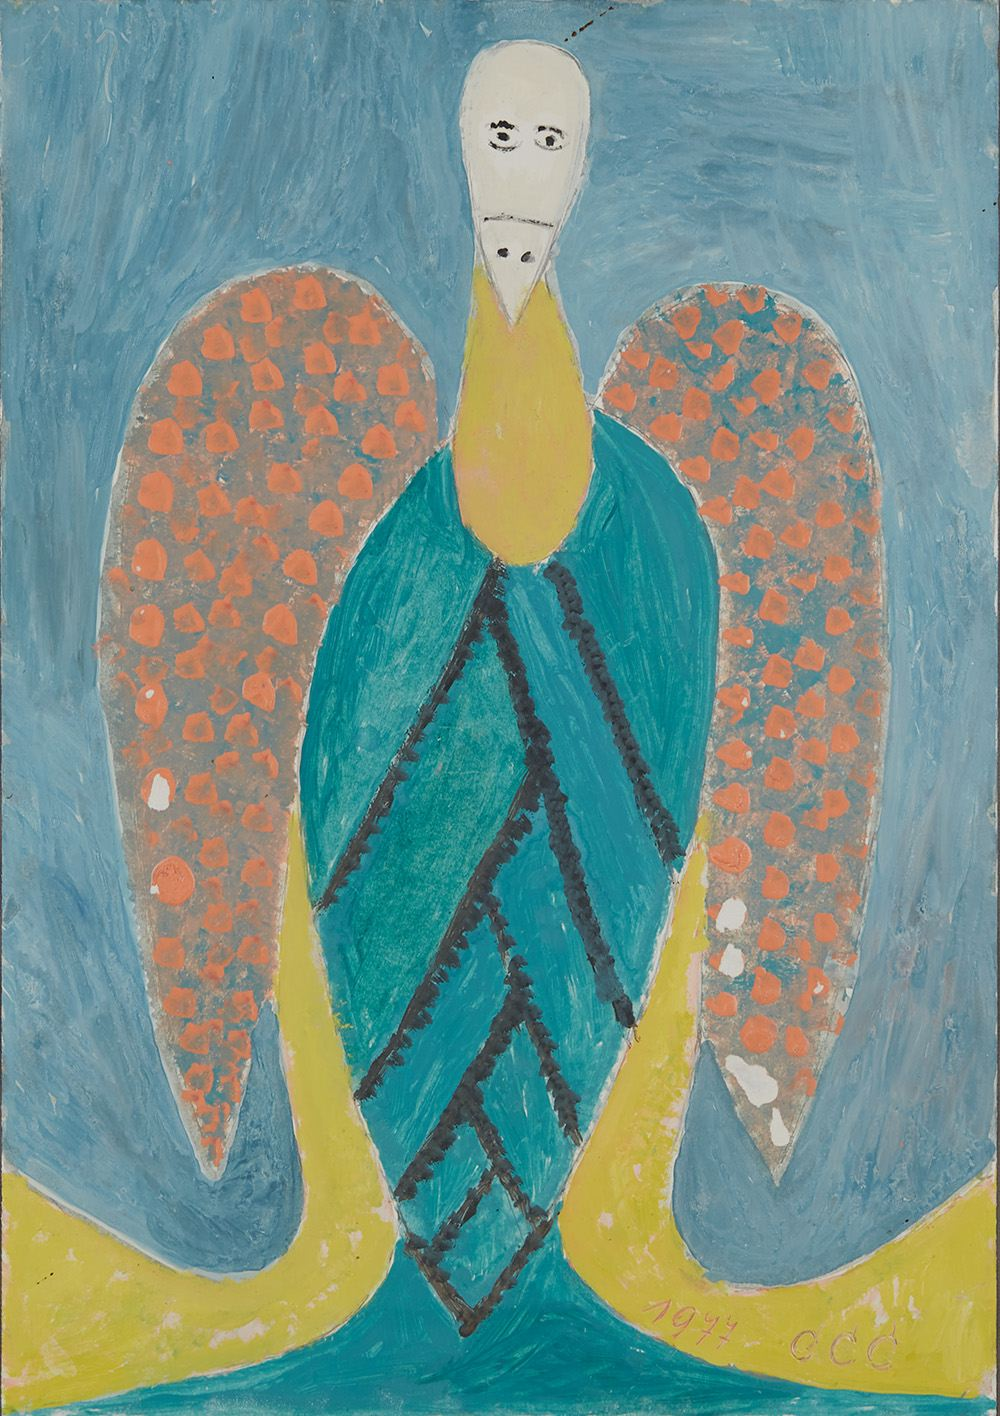 Sava Sekulić  Corncob with Wings  , 1977 Oil, graphite on paper 19.75 x 14 inches 50.2 x 35.6 cm SvS 4